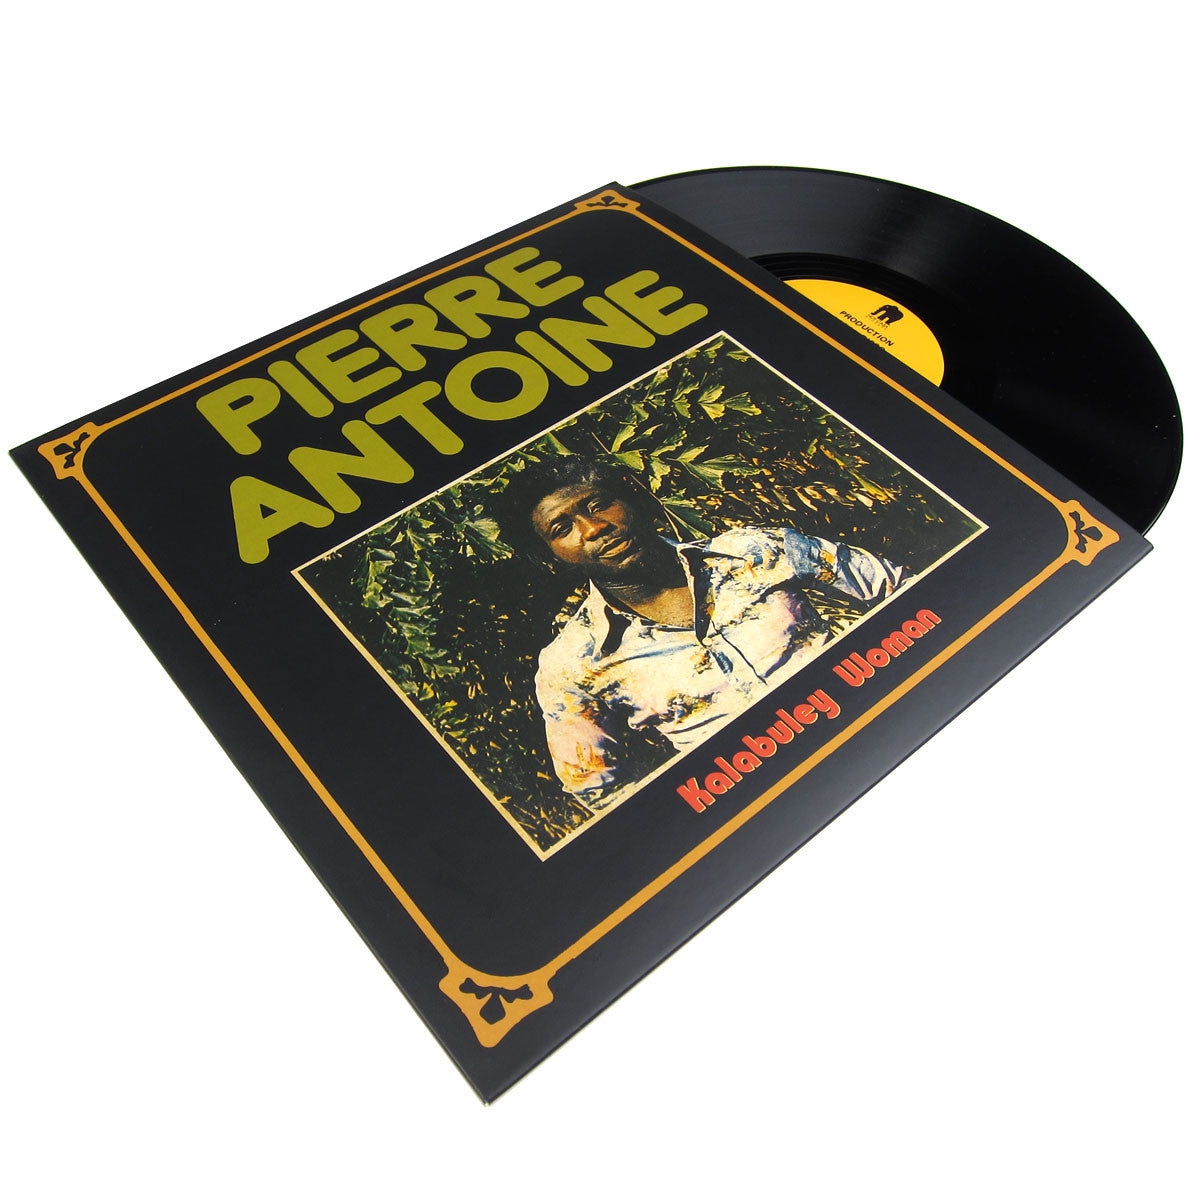 Pierre Antoine: Kalabuley Woman Vinyl LP